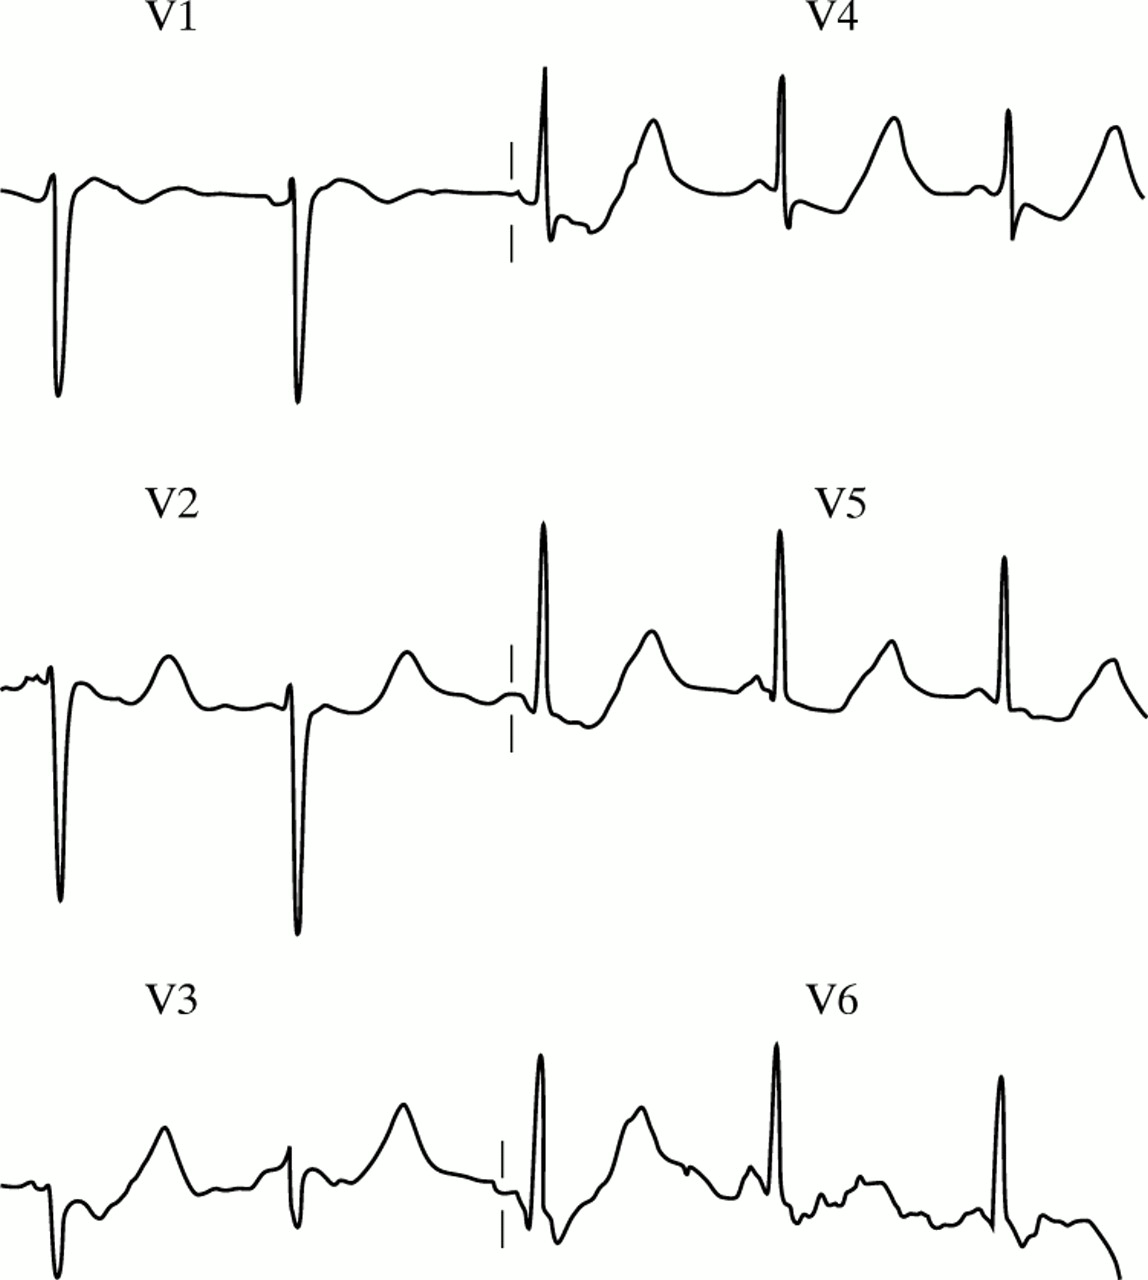 Recognising Signs Of Danger Ecg Changes Resulting From An Abnormal Serum Potassium